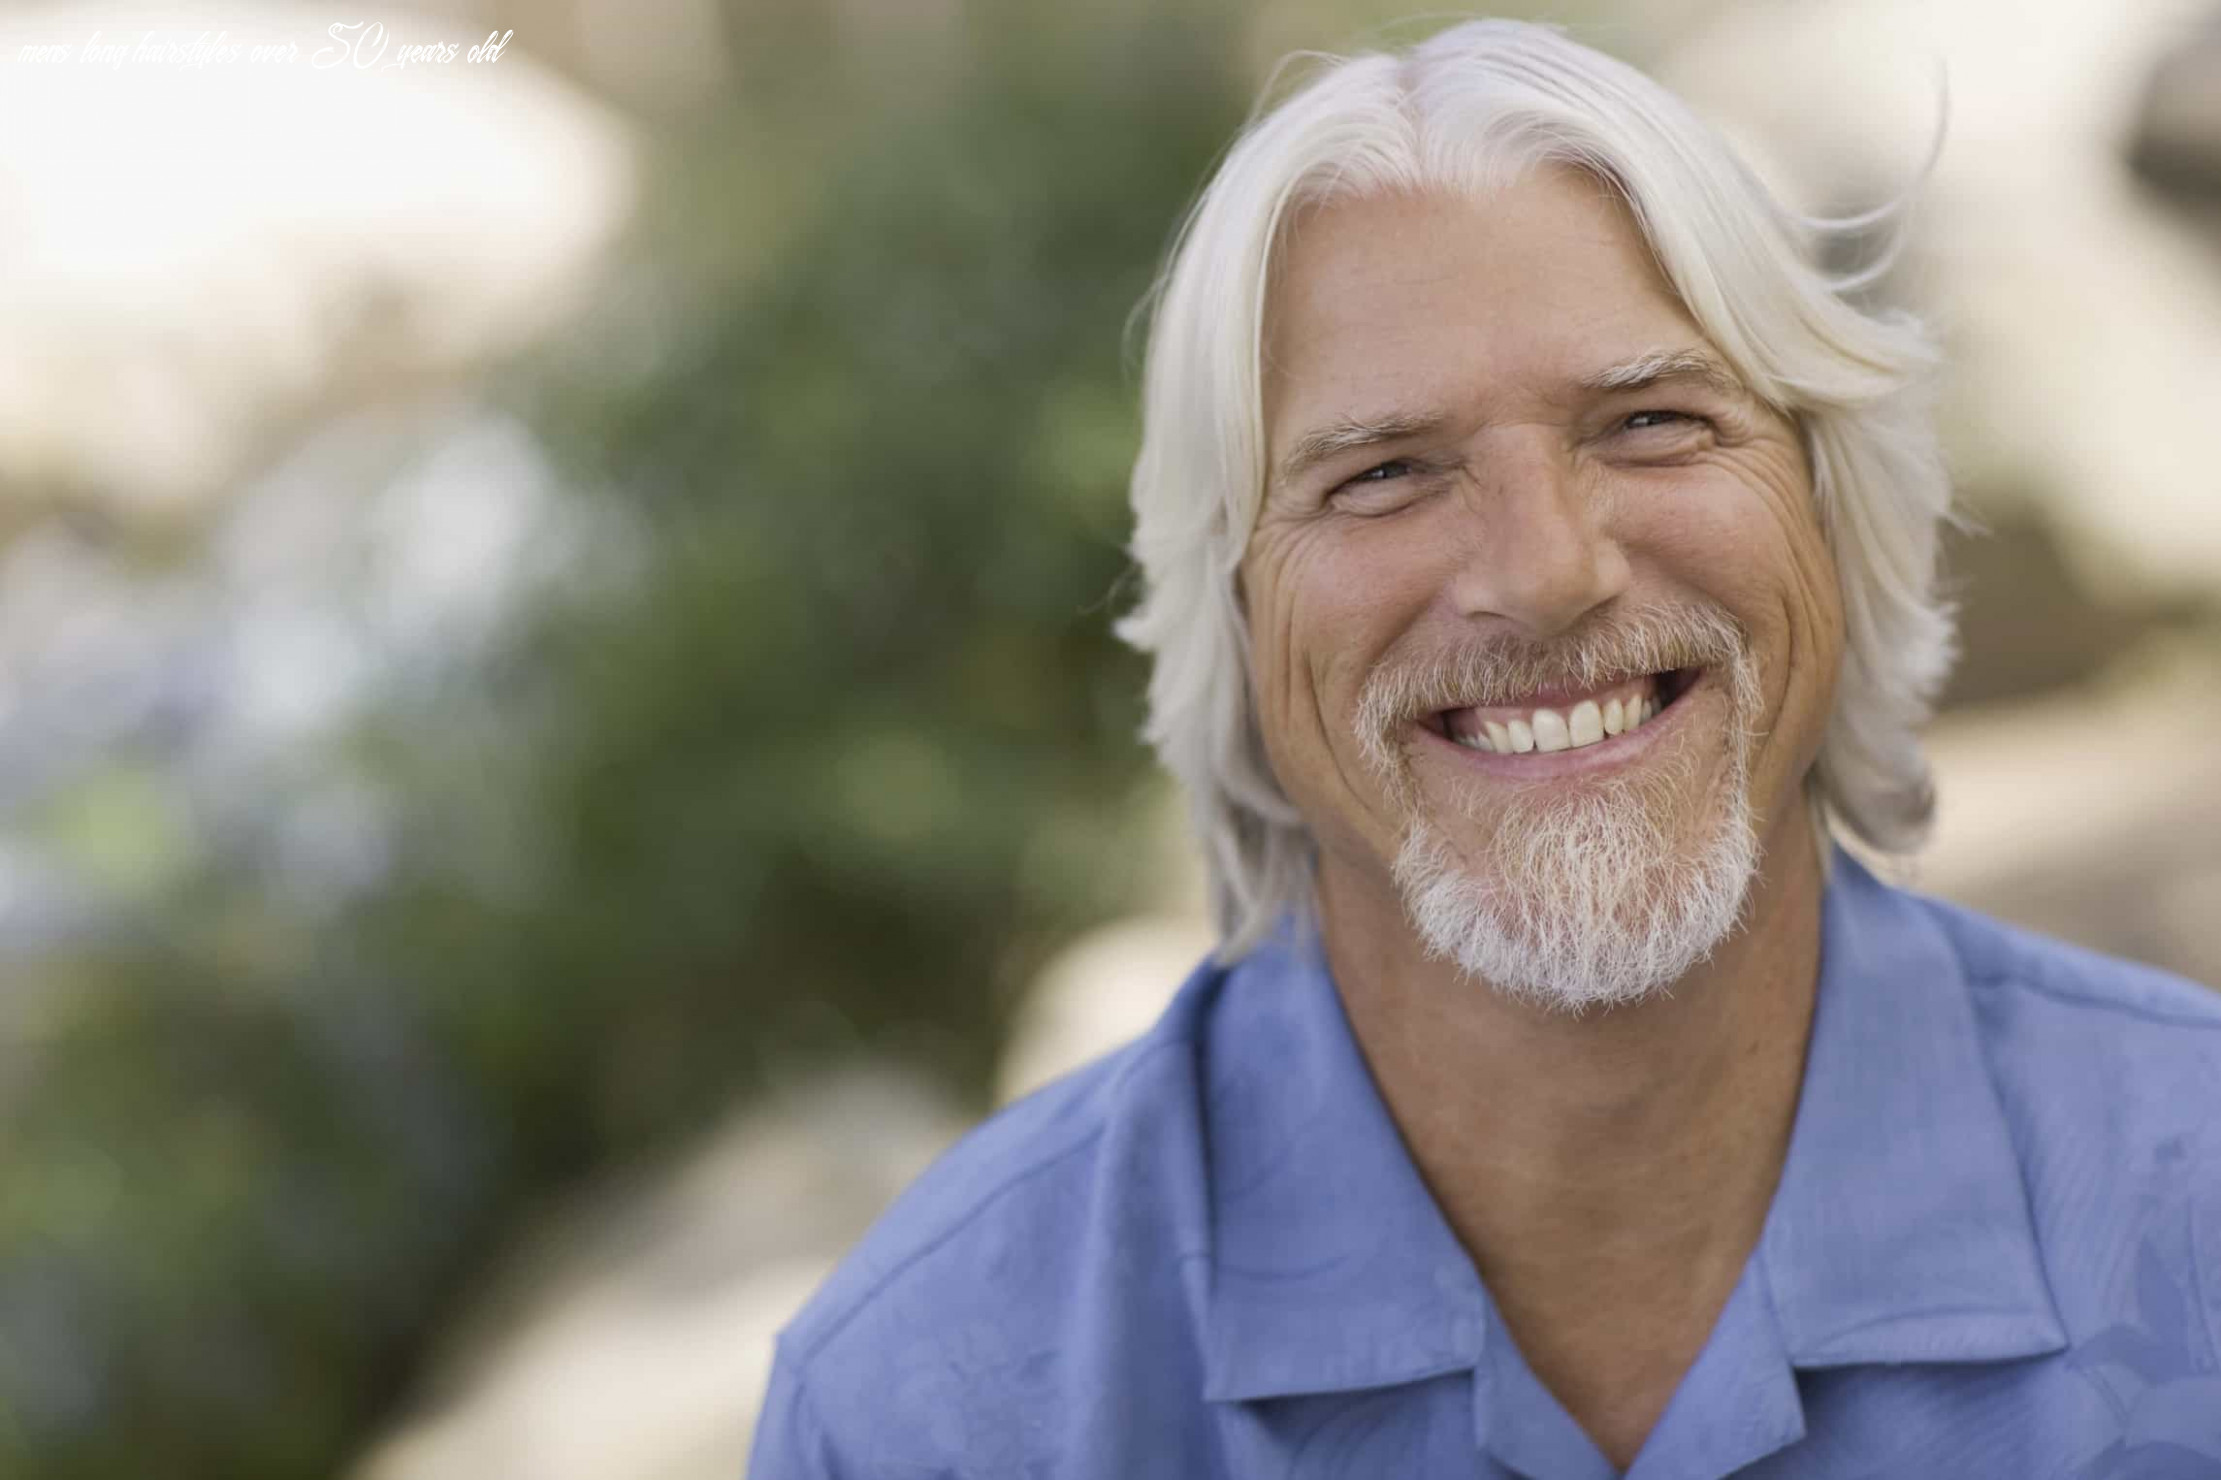 10 classy older men hairstyles to rejuvenate youth (10 trends) mens long hairstyles over 50 years old